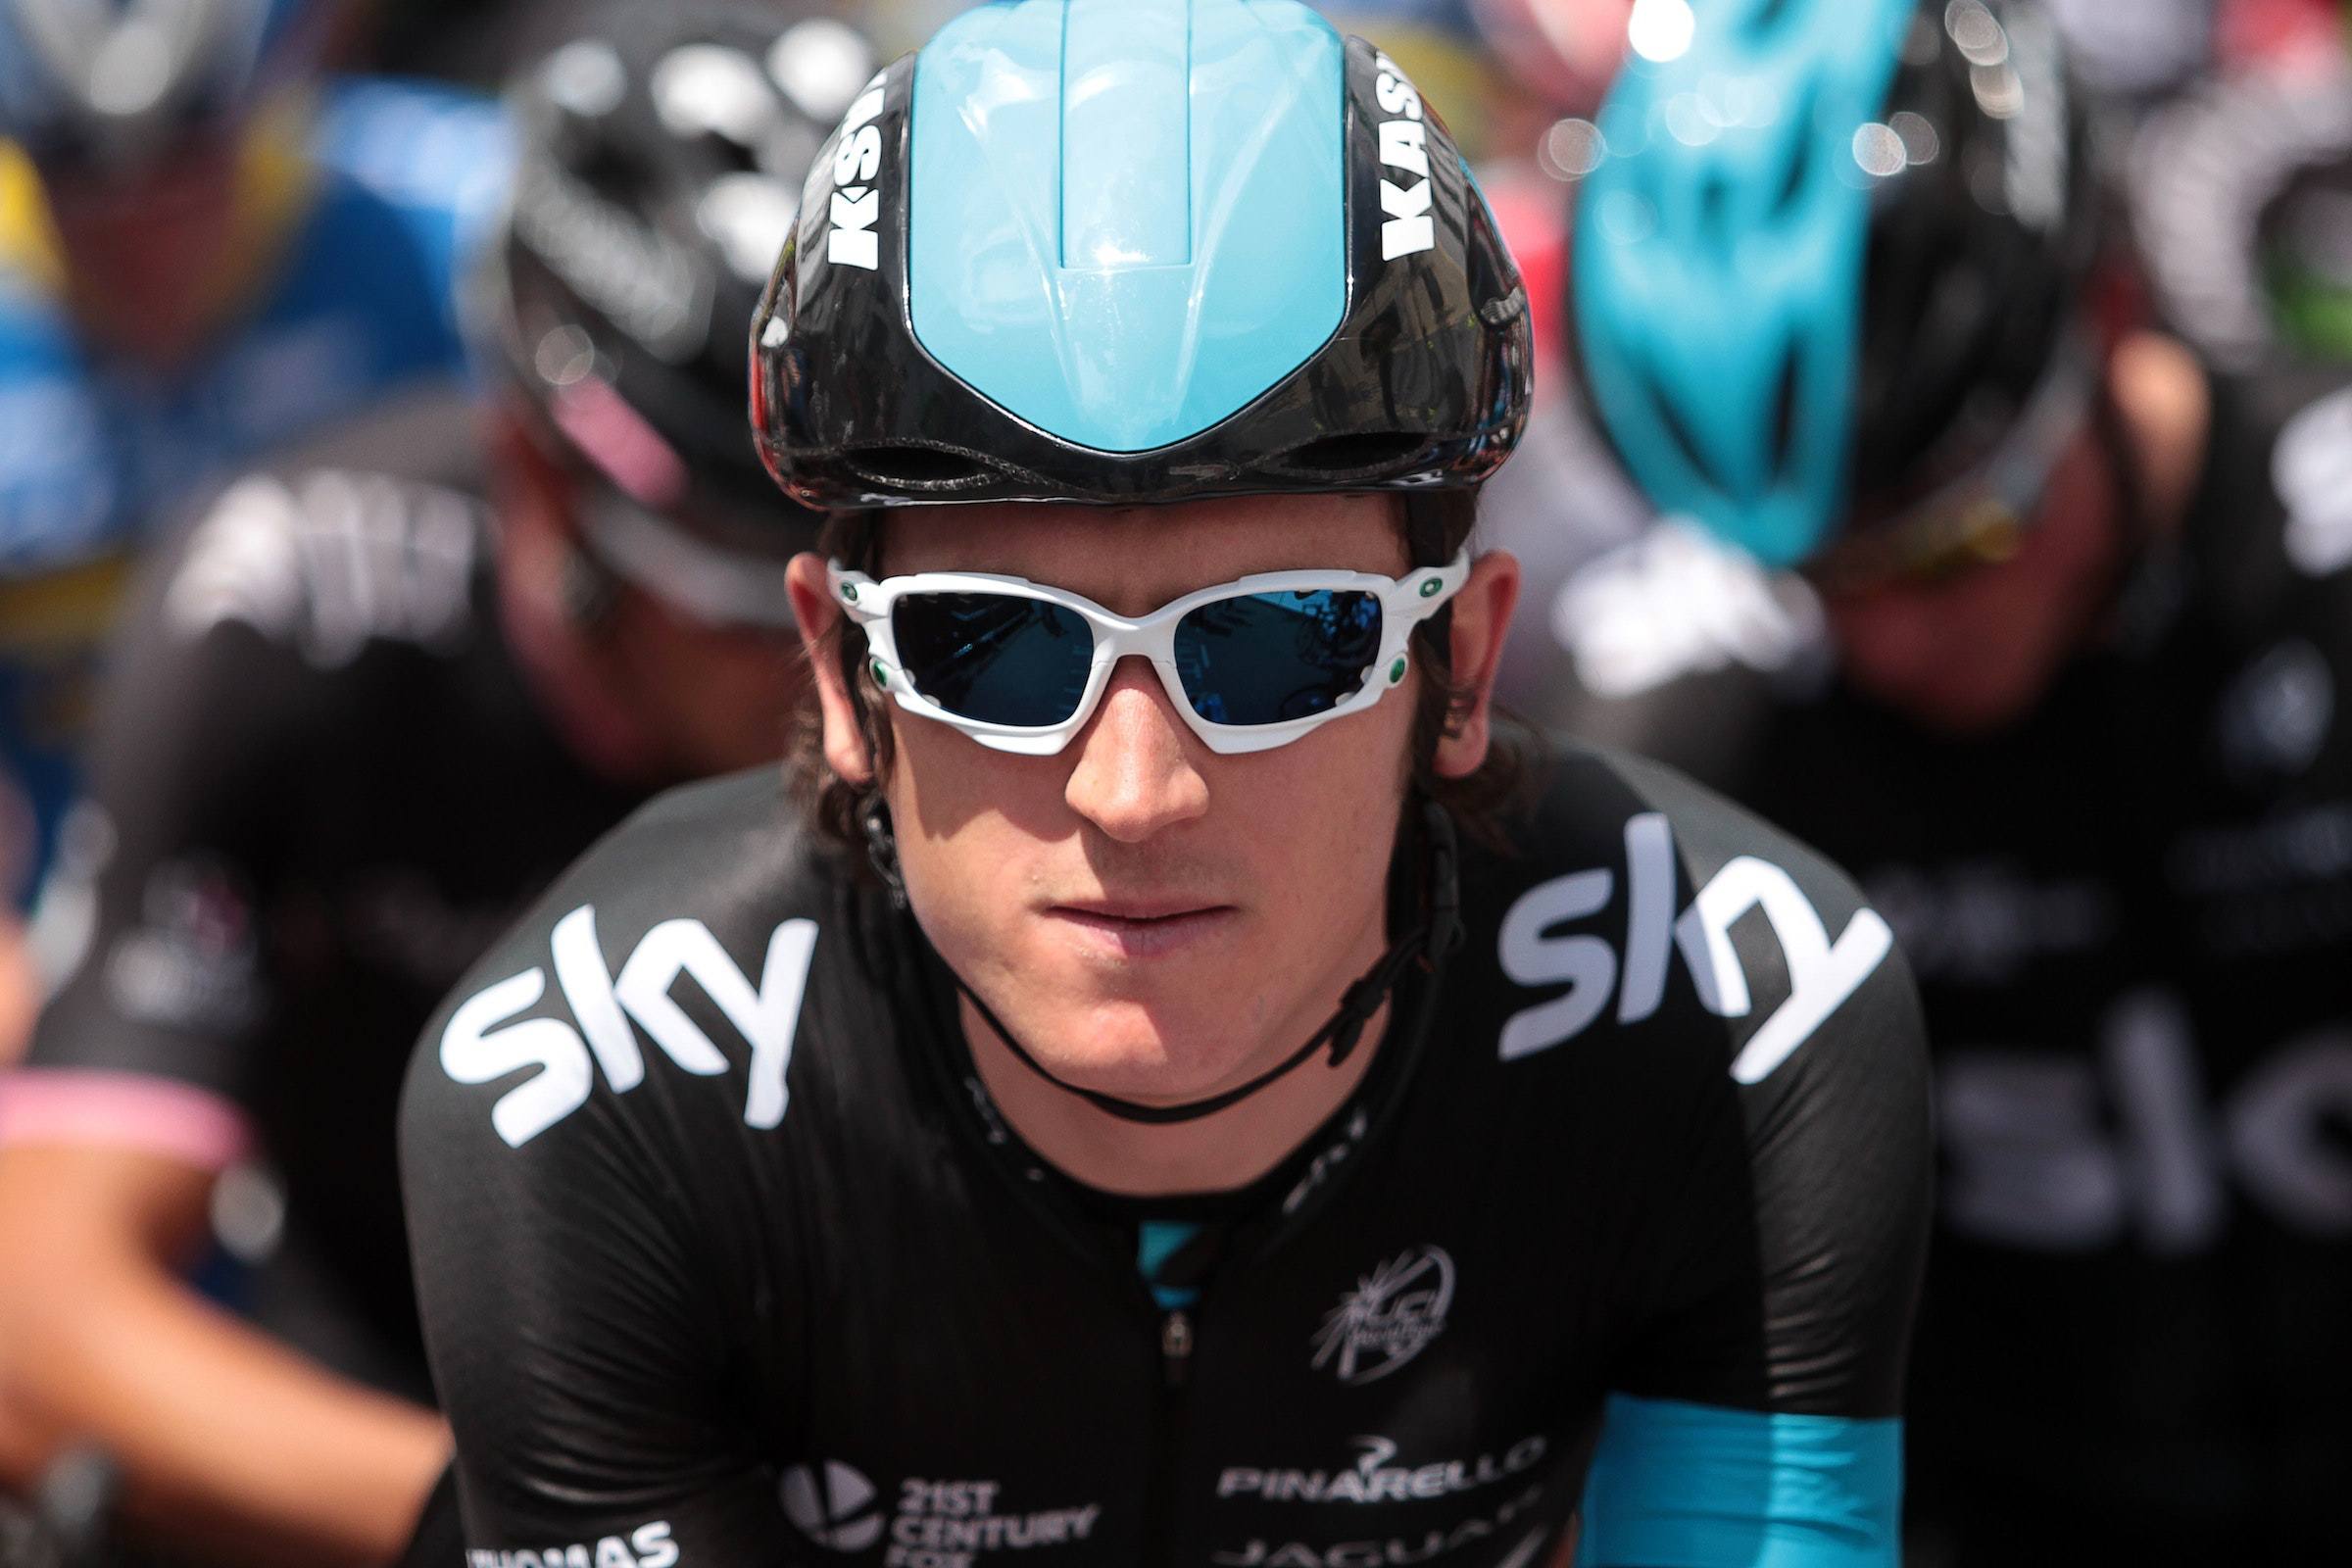 Geraint Thomas, British road race championships, Monmouth 2014, pic: ©Huw Evans Picture Agency, used with permission